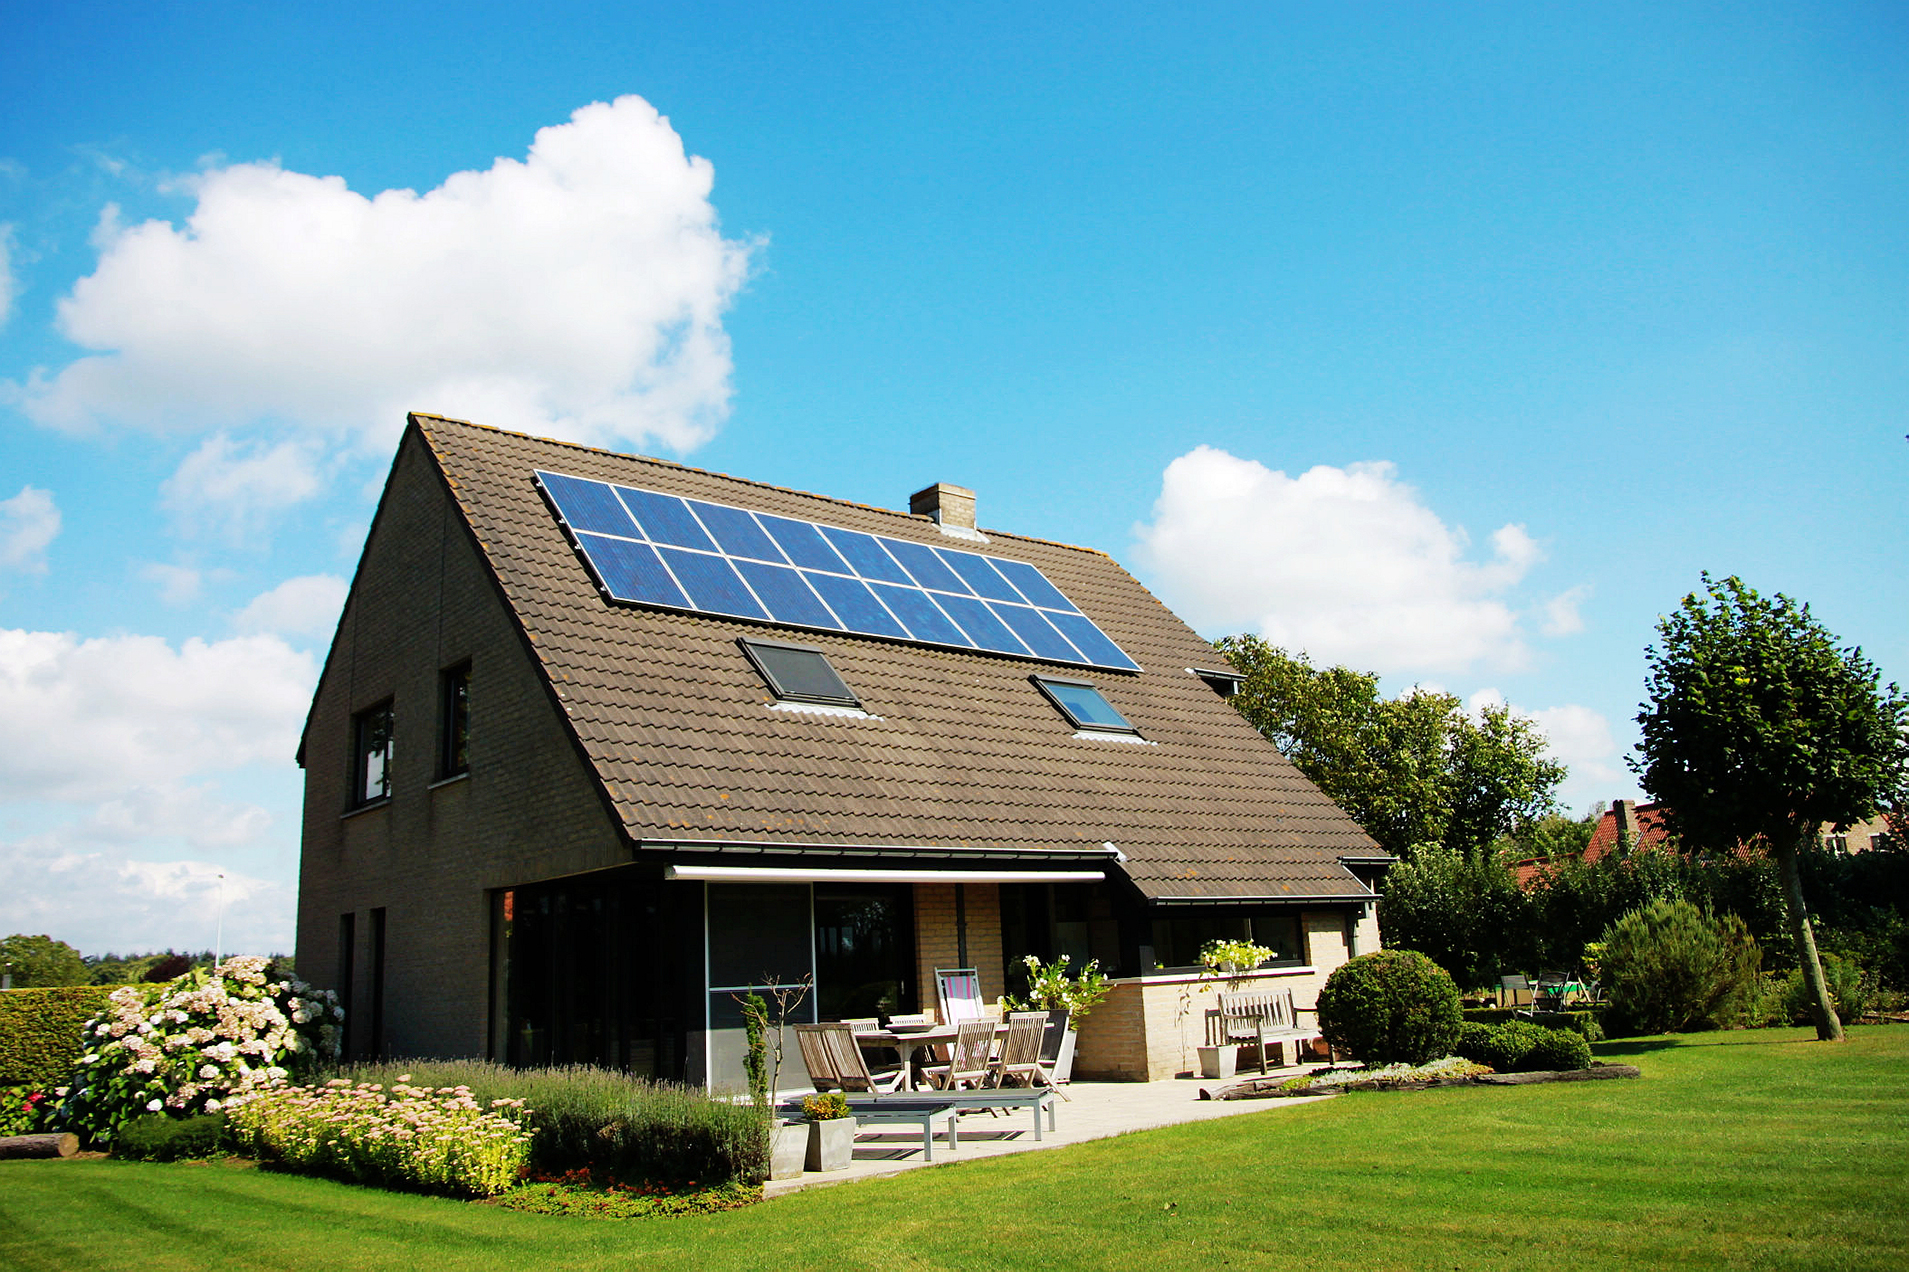 solar panels of the roof of a house